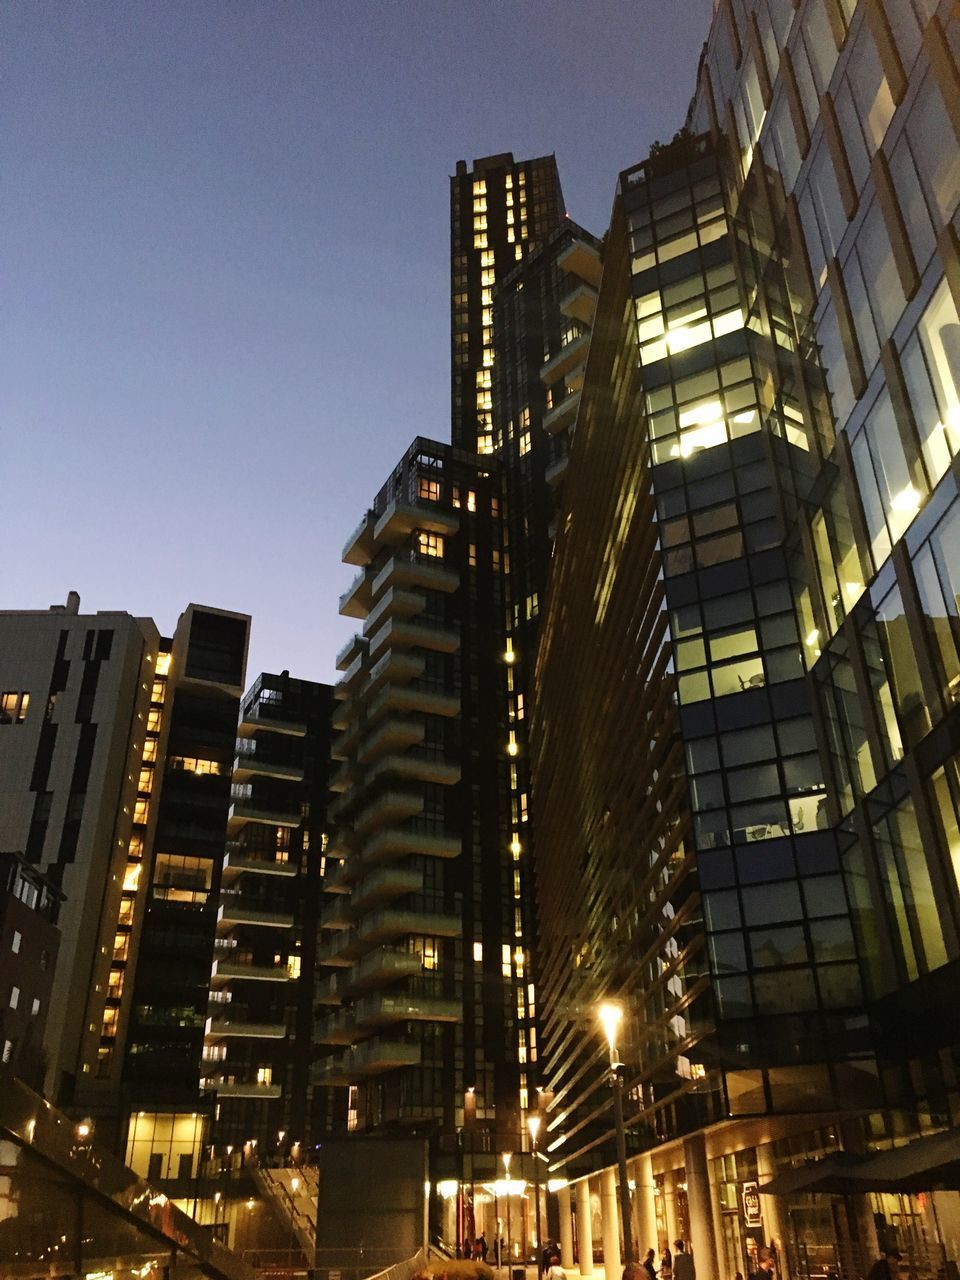 building exterior, architecture, built structure, illuminated, building, city, sky, low angle view, office building exterior, no people, tall - high, modern, skyscraper, dusk, clear sky, nature, office, night, outdoors, city life, financial district, apartment